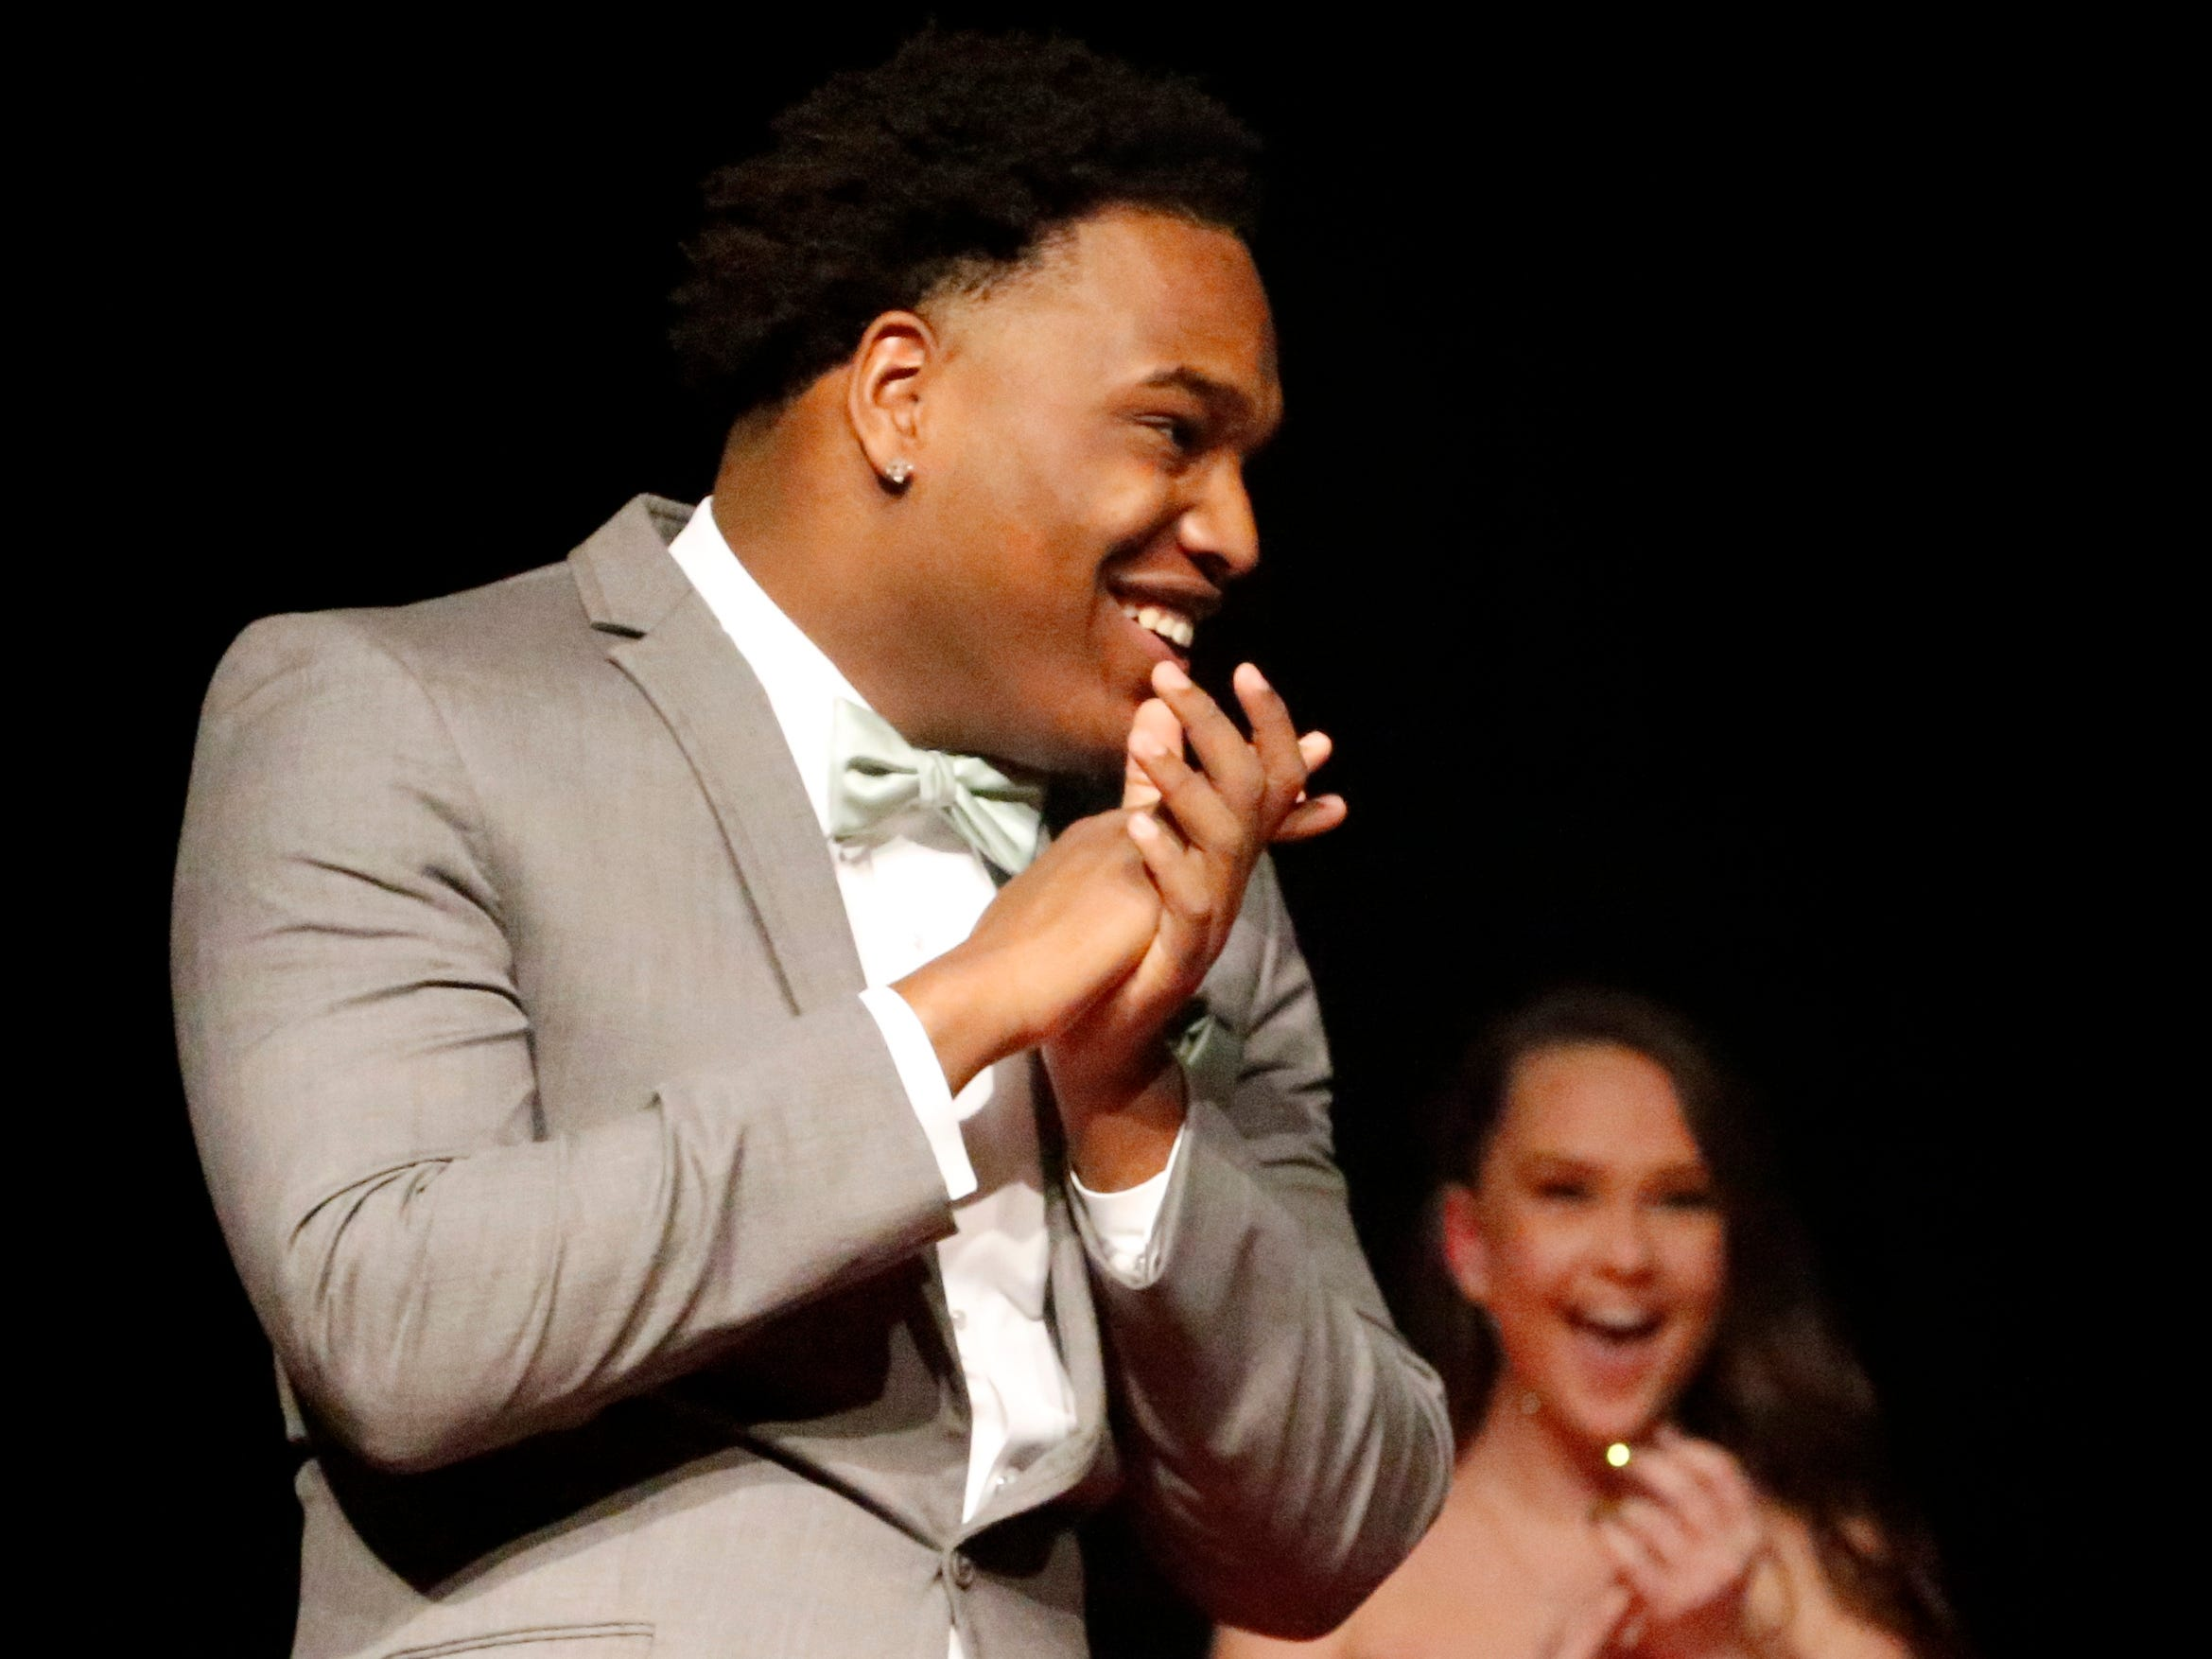 Shamar Vanzant shows off his tux at the end of the runway during the Siegel Prom Fashion show on Thursday, Feb. 14, 2019.